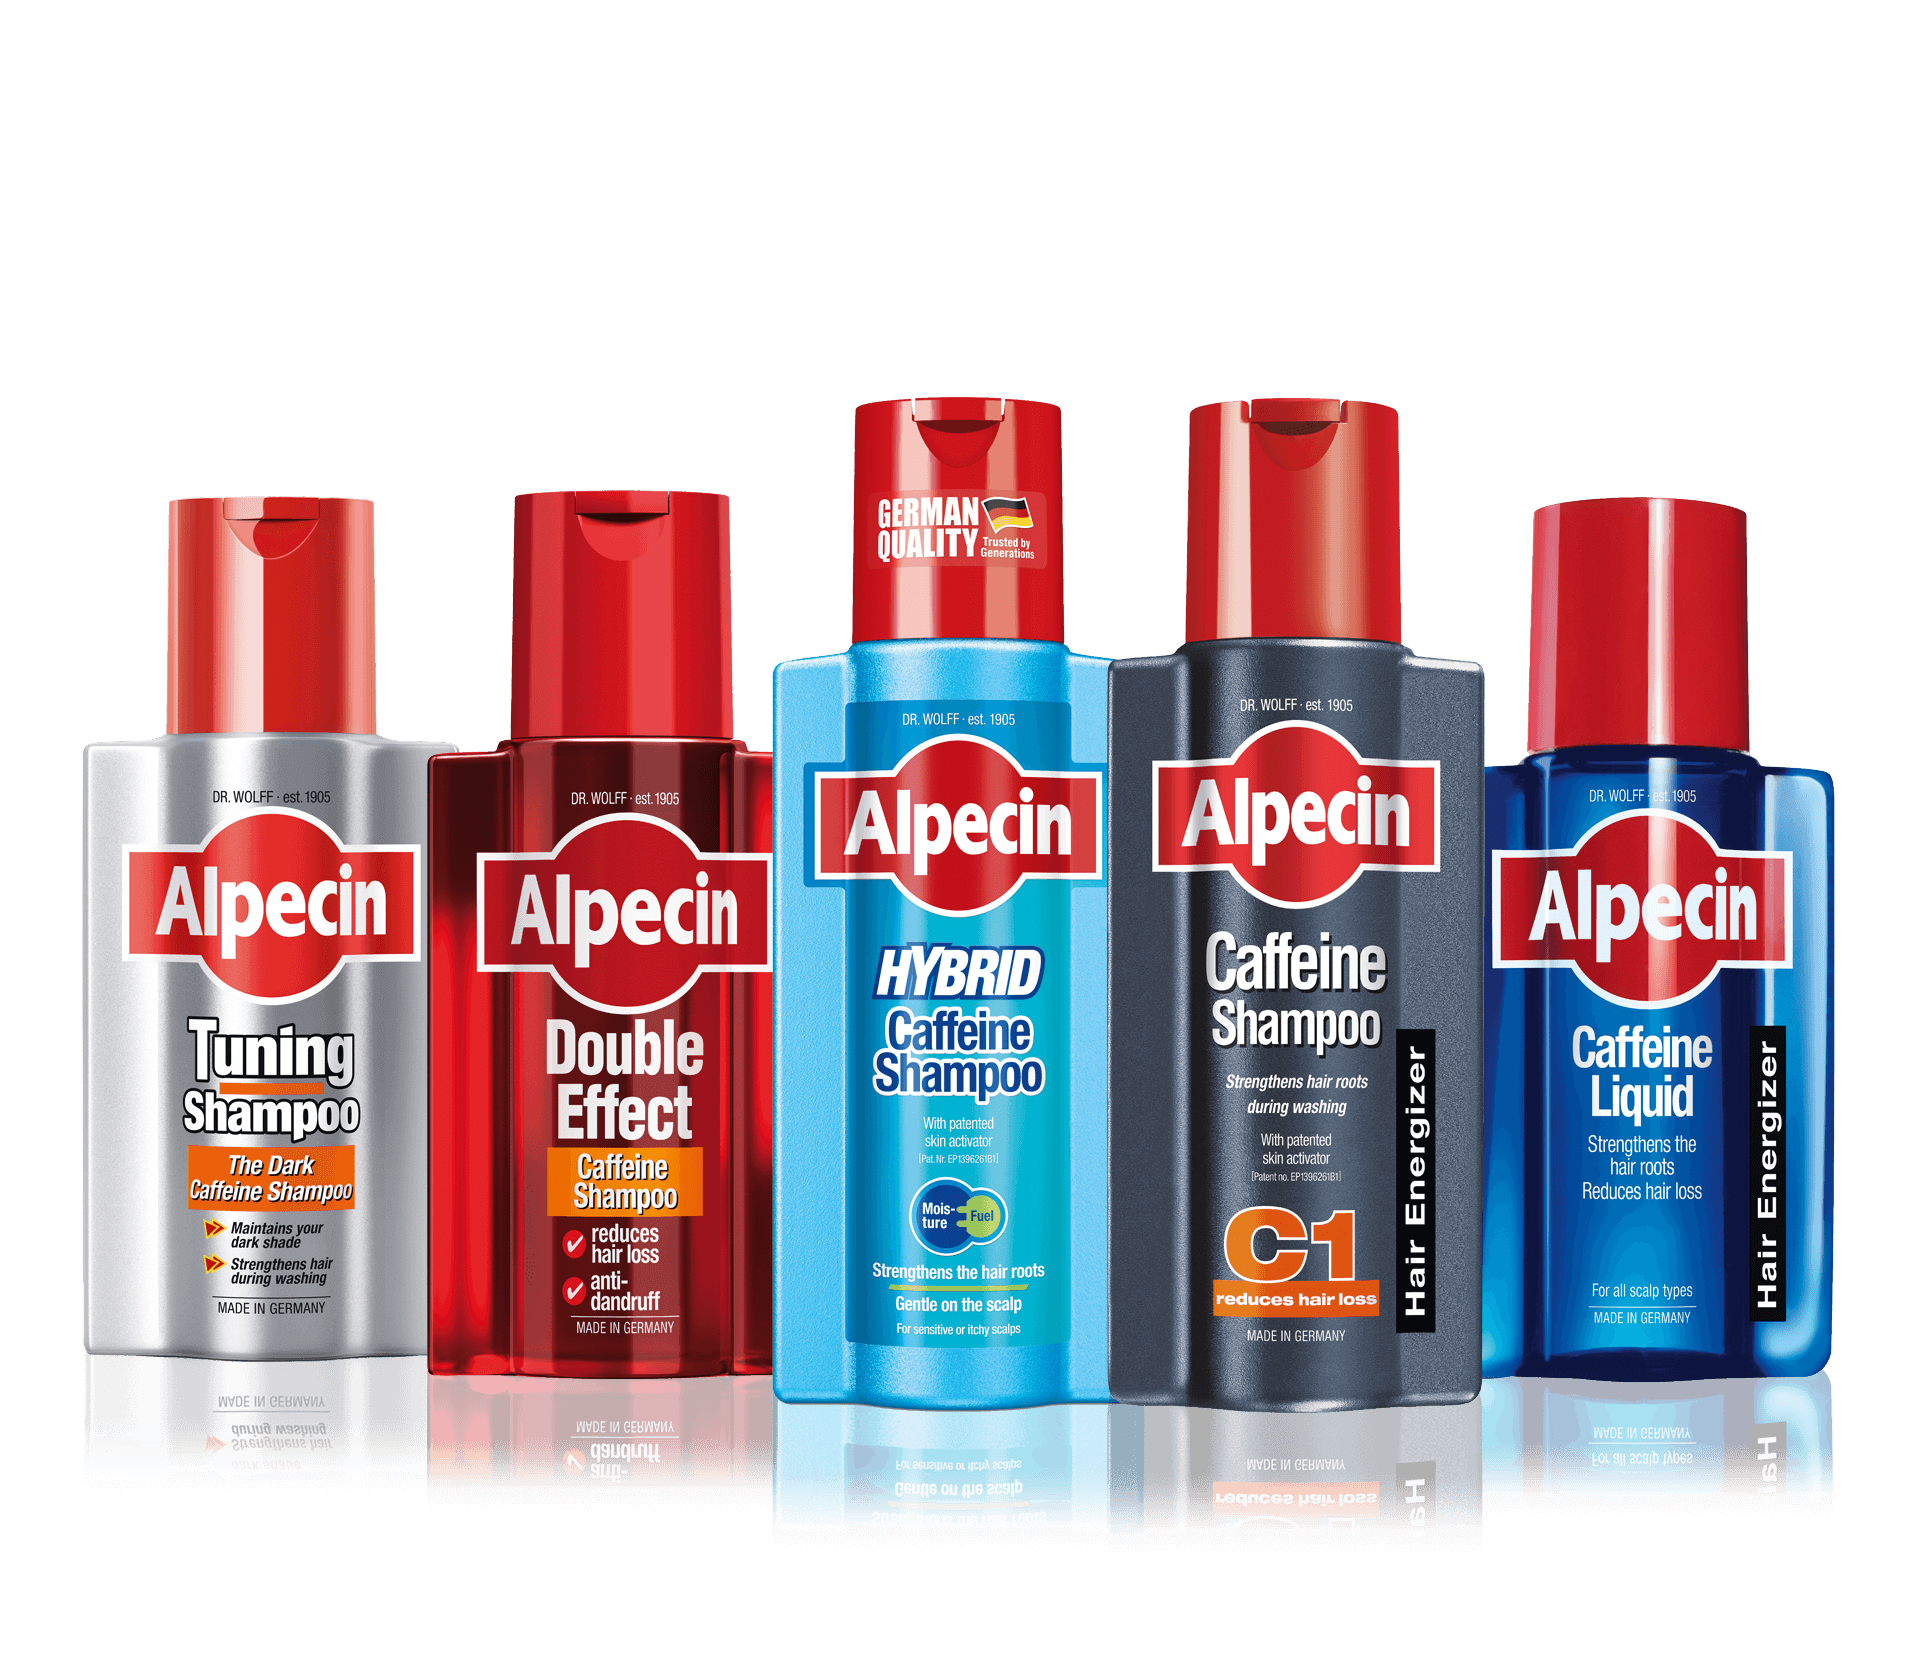 Where can I purchase Alpecin products?